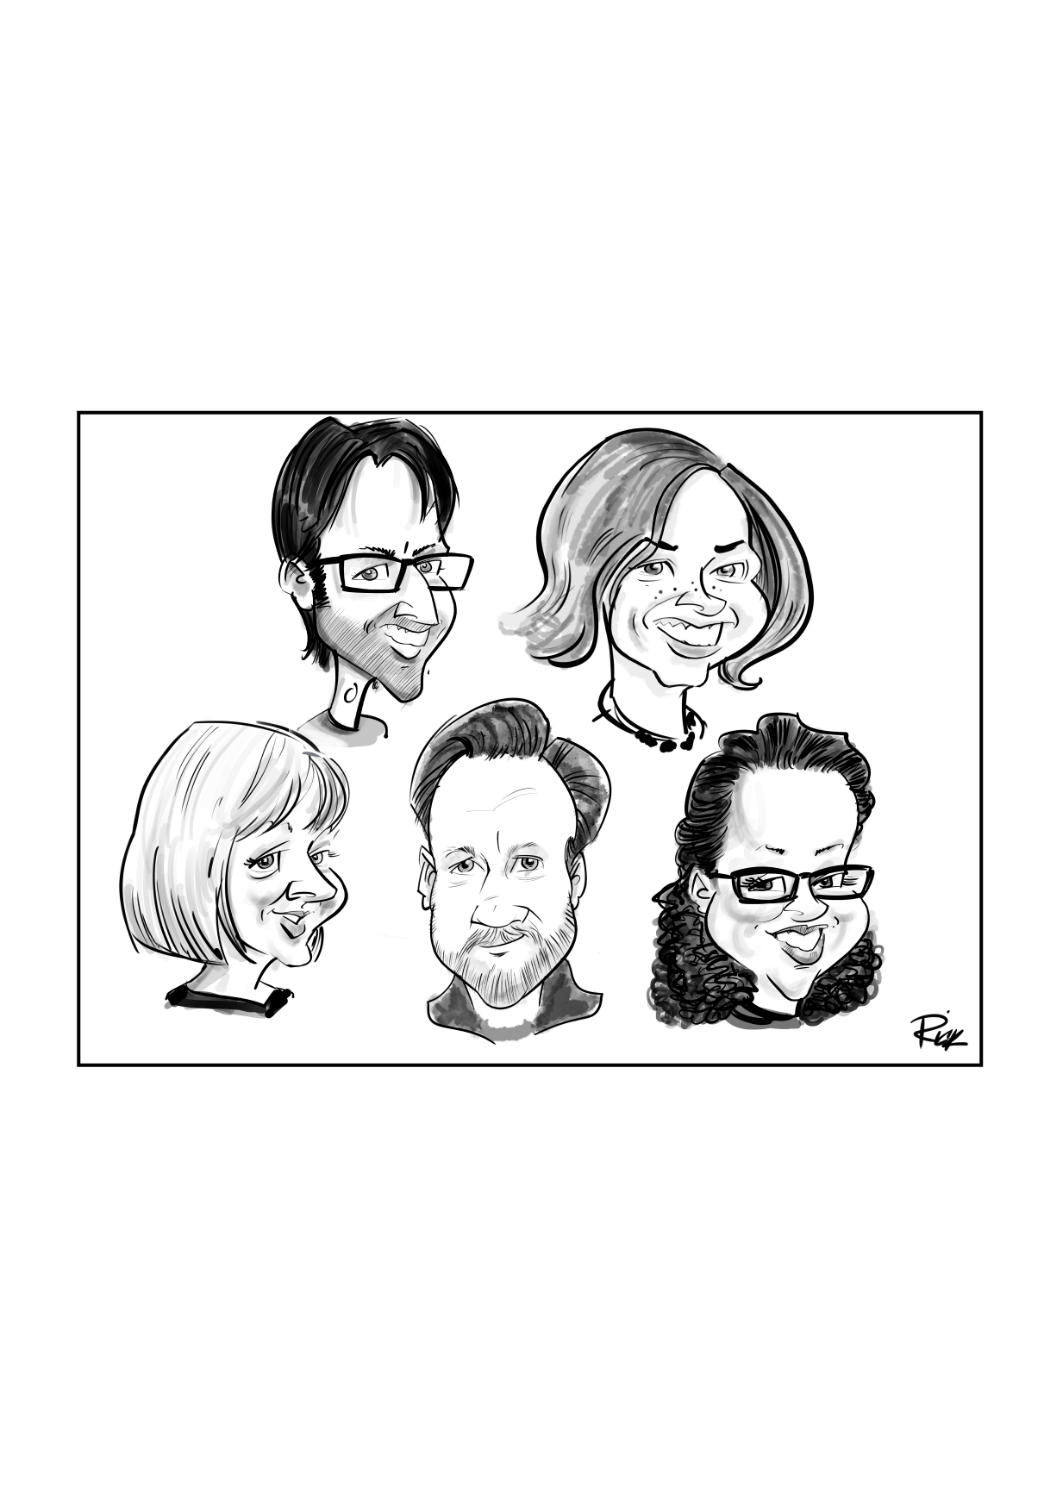 digital mono caricature of 5 persons heads